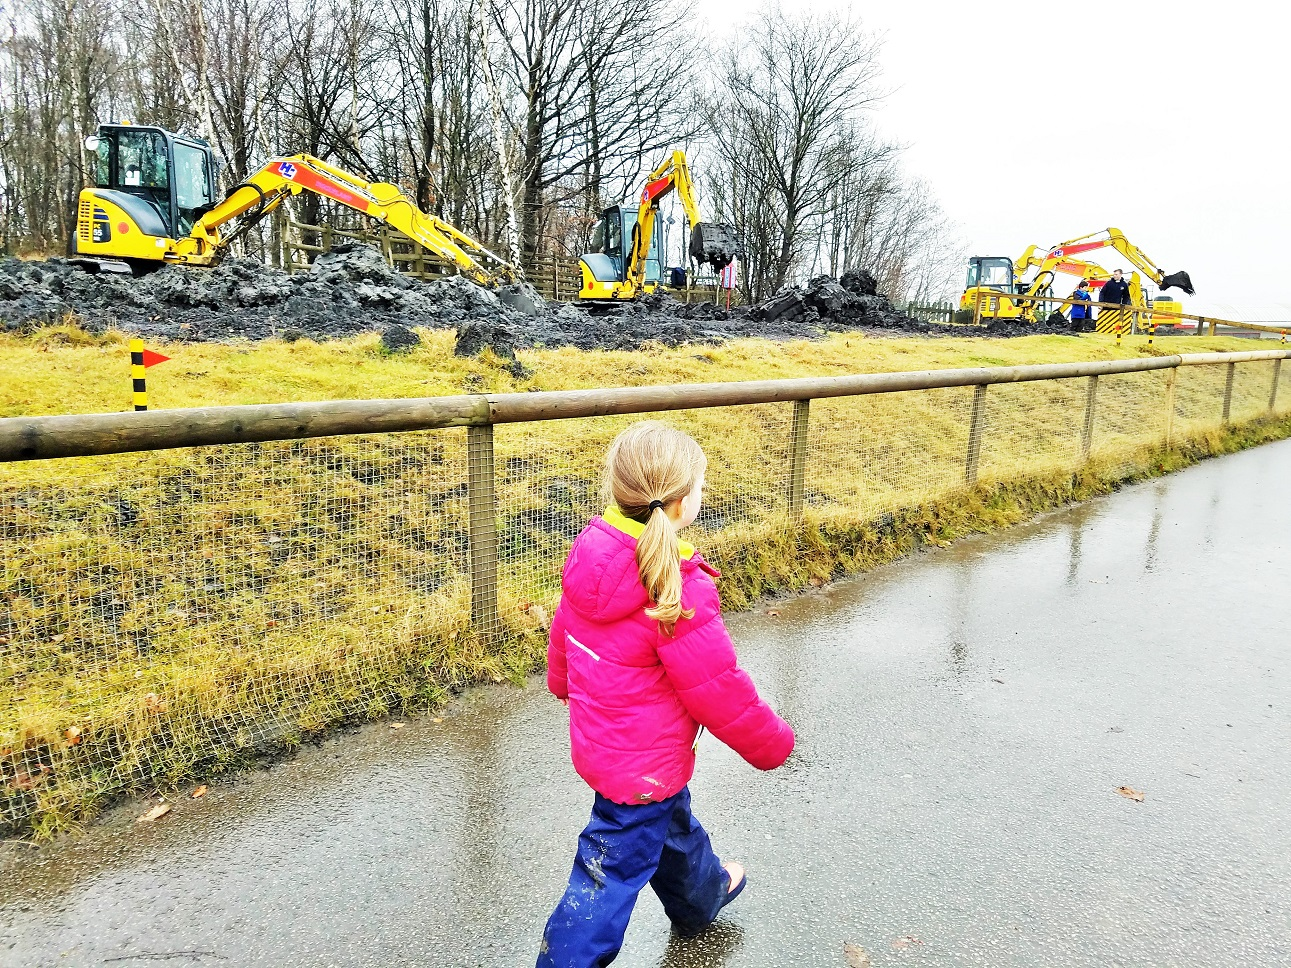 diggerland in the rain - child walking through diggerland